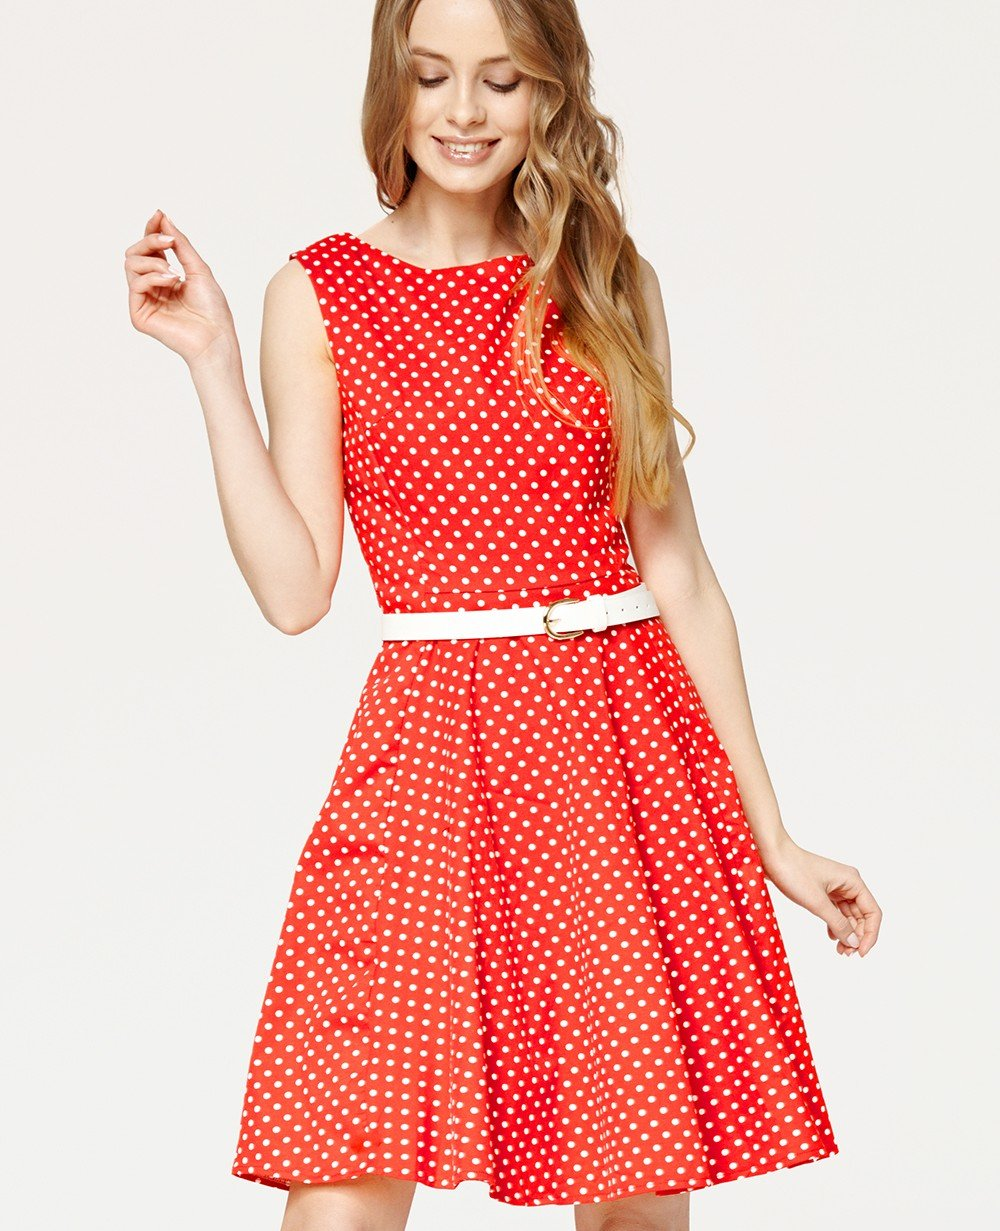 Misfit London Audrey Red Polka Dot Swing Dress Vintage & British Inspired